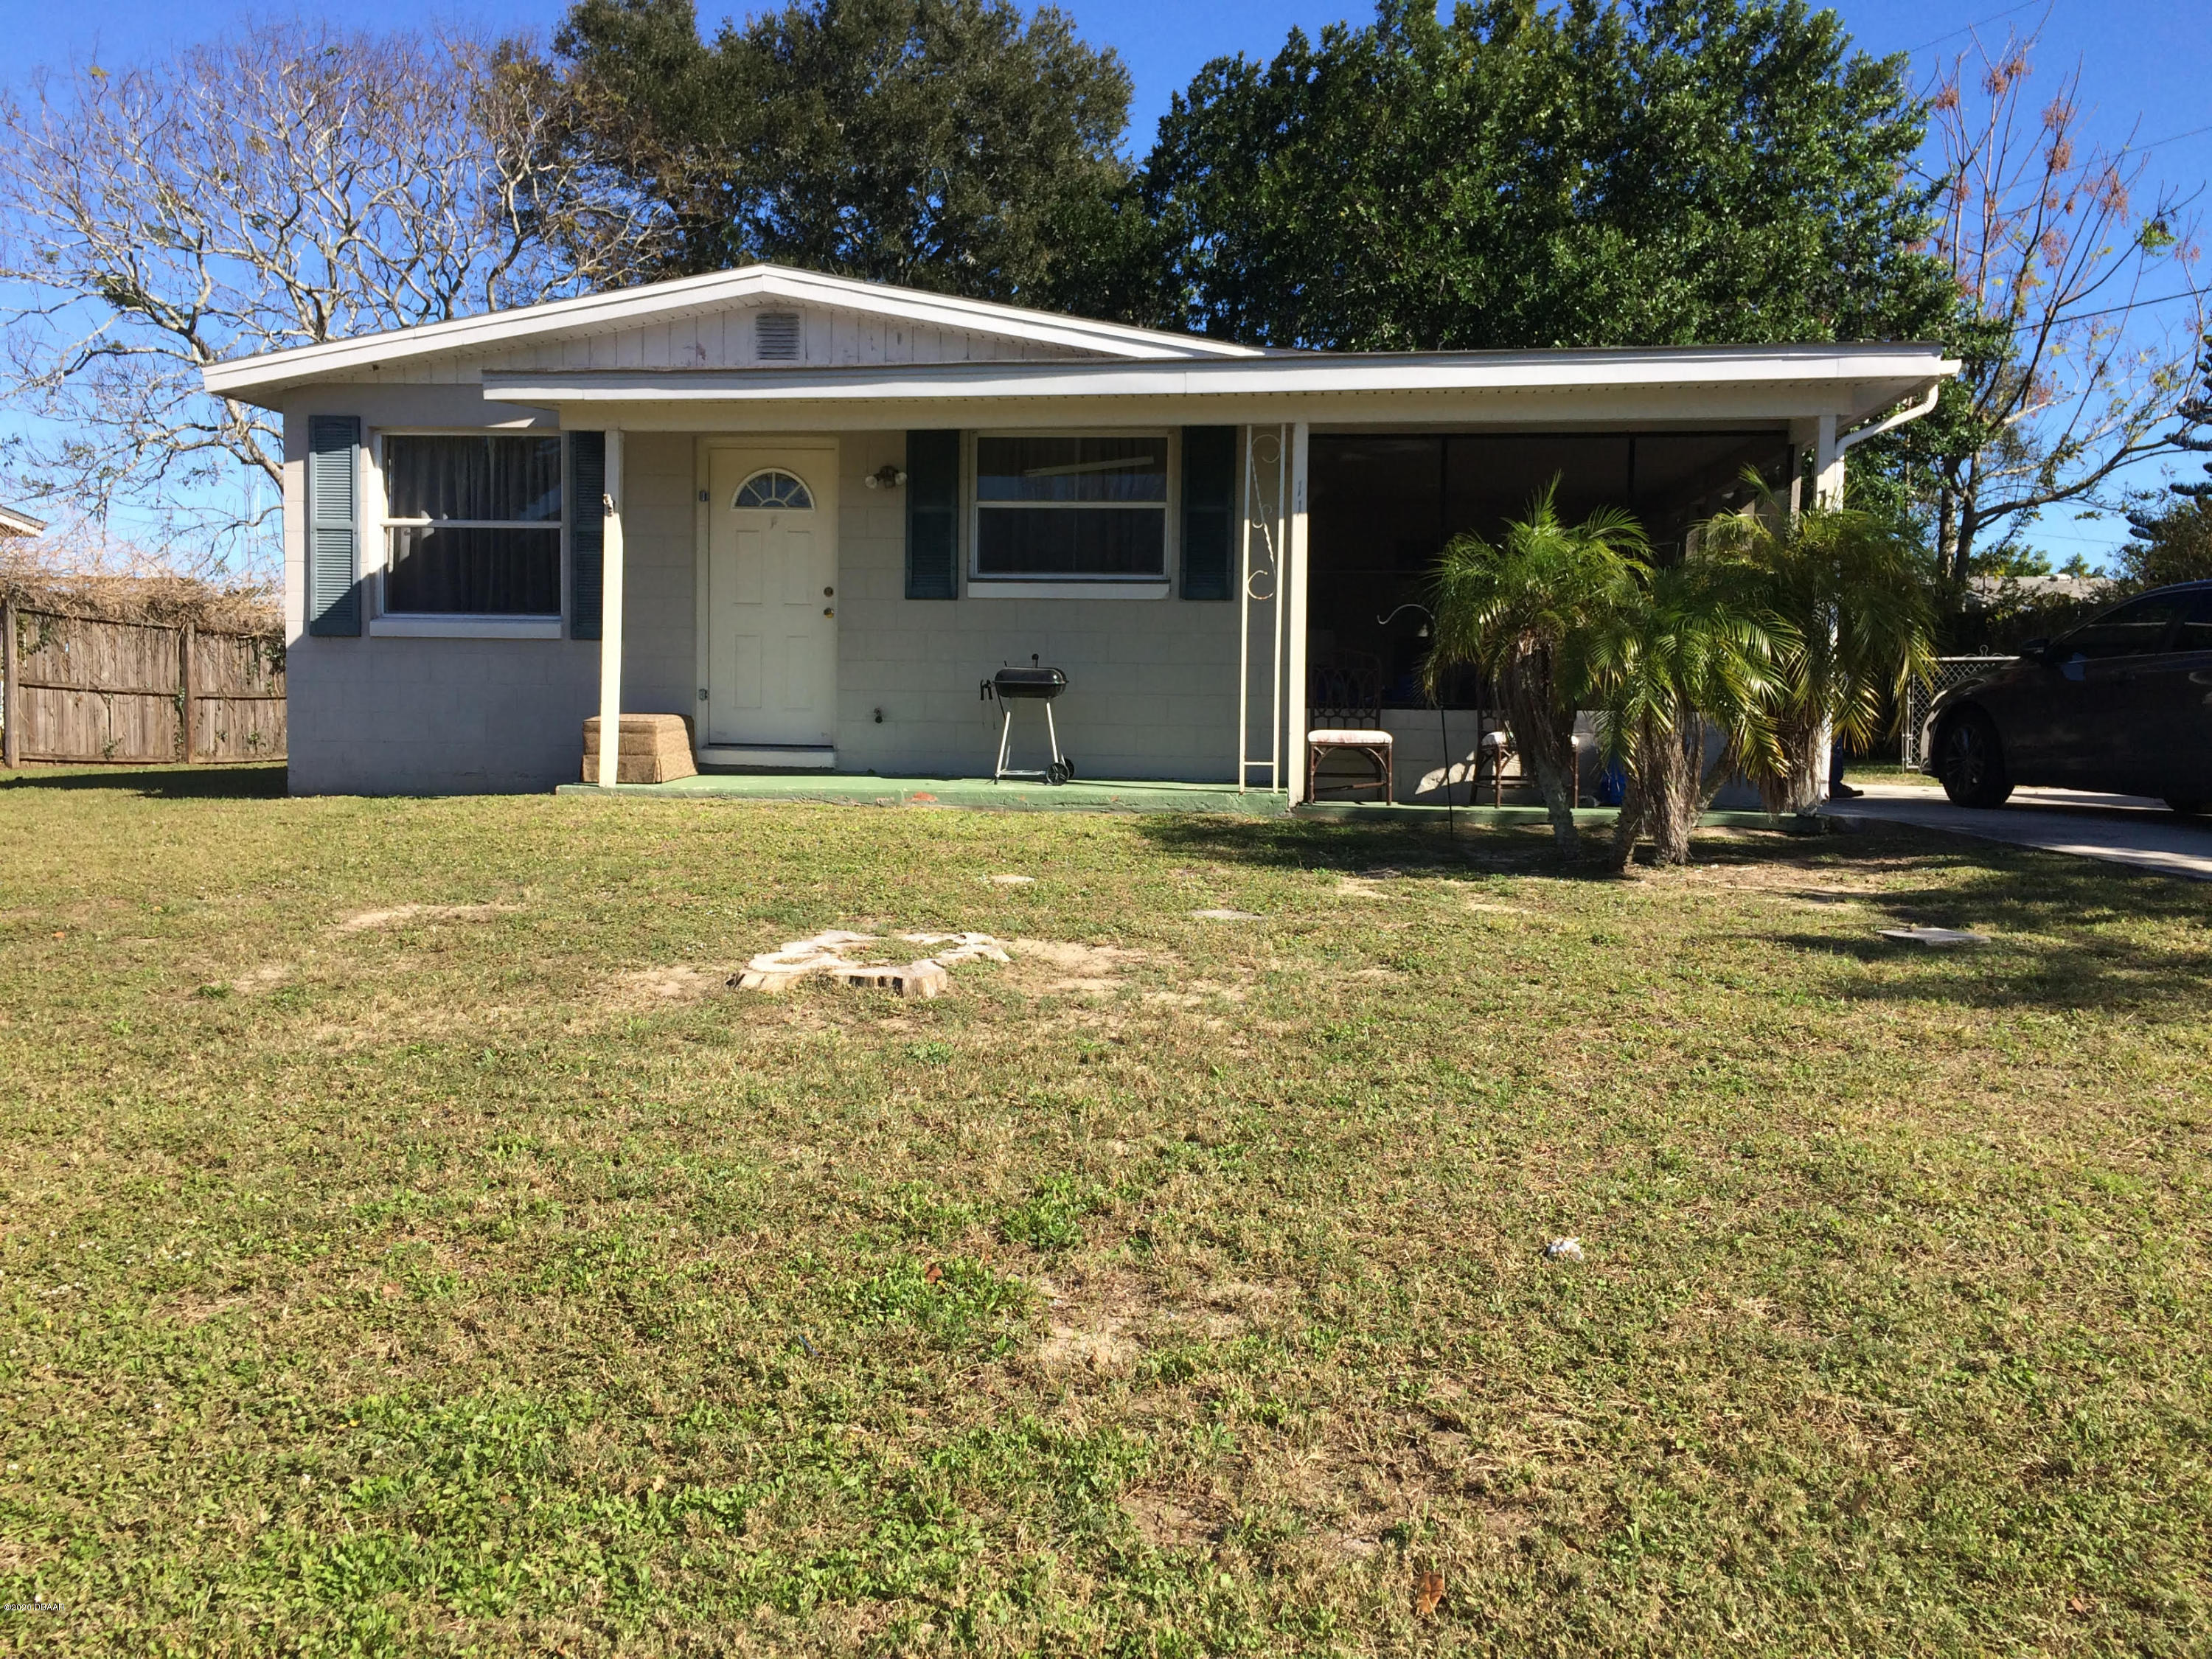 Photo of 11 Valley Drive, Daytona Beach, FL 32117